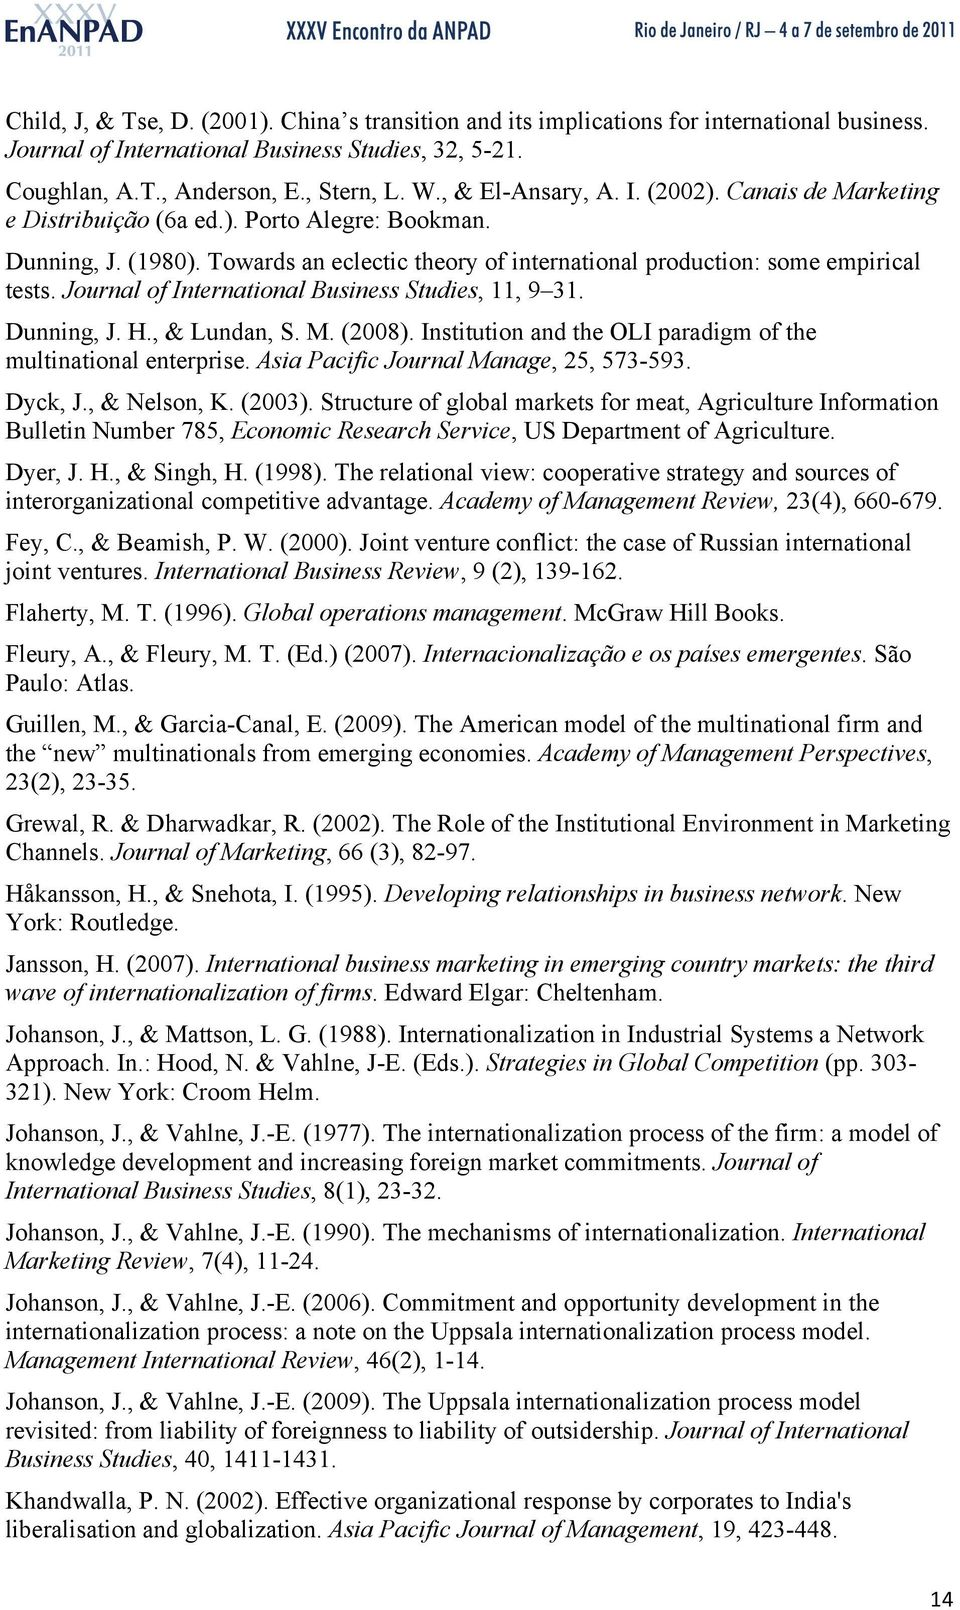 Journal of International Business Studies, 11, 9 31. Dunning, J. H., & Lundan, S. M. (2008). Institution and the OLI paradigm of the multinational enterprise. Asia Pacific Journal Manage, 25, 573-593.